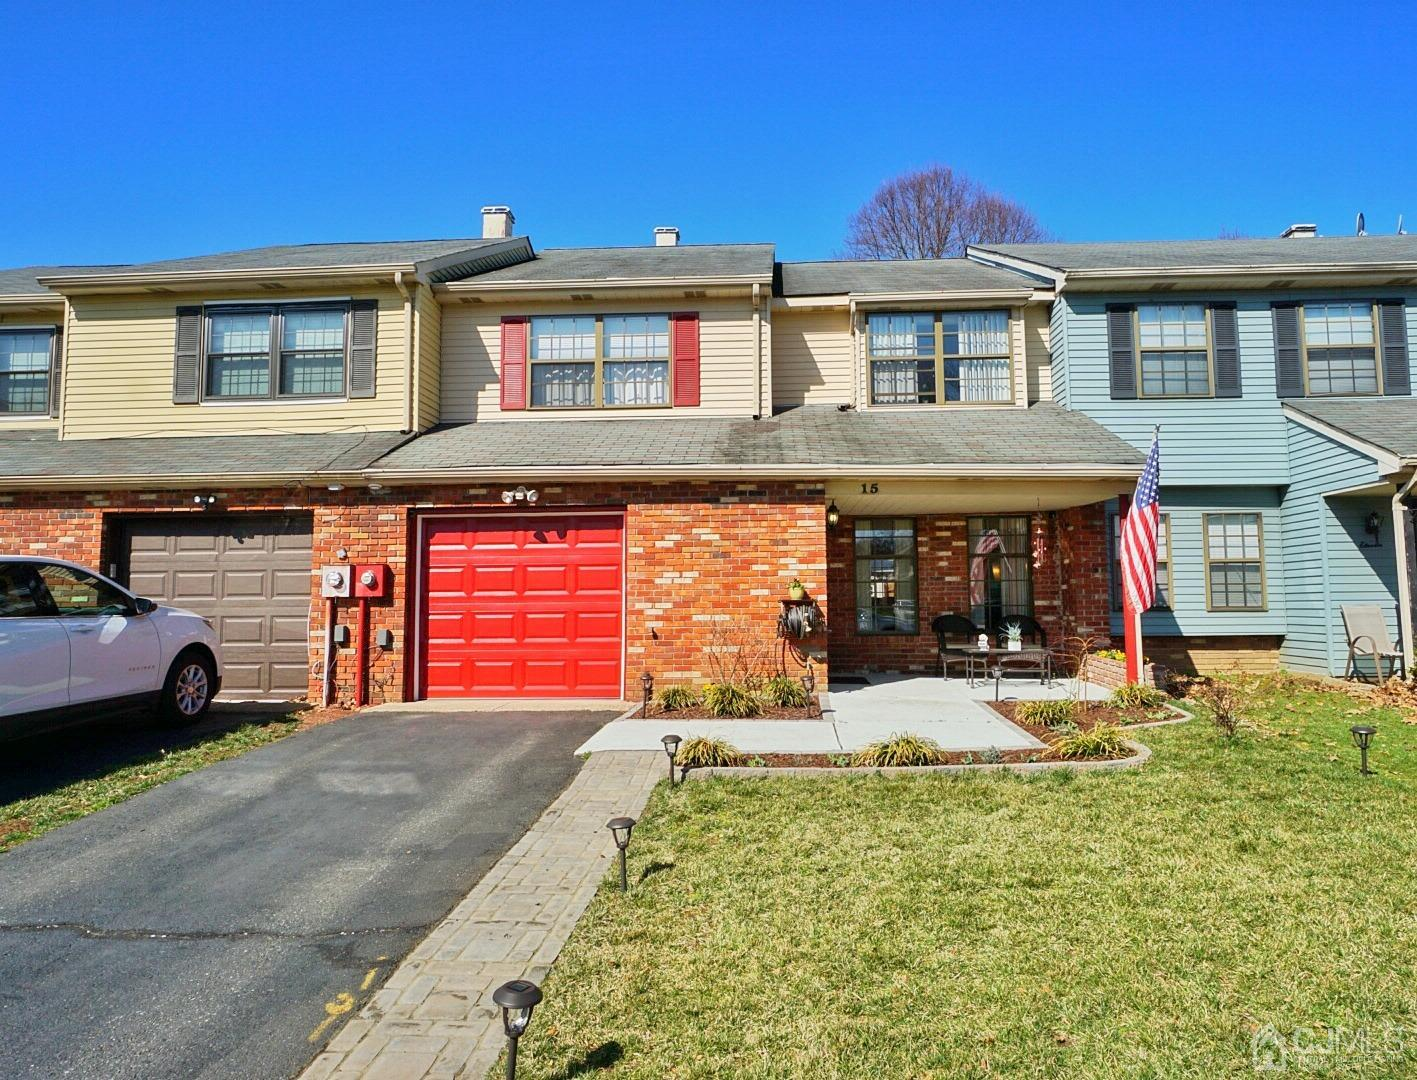 15 Thornton Court, East Brunswick, New Jersey 08816, 4 Bedrooms Bedrooms, ,3 BathroomsBathrooms,Residential,For Sale,15 Thornton Court,2114439R